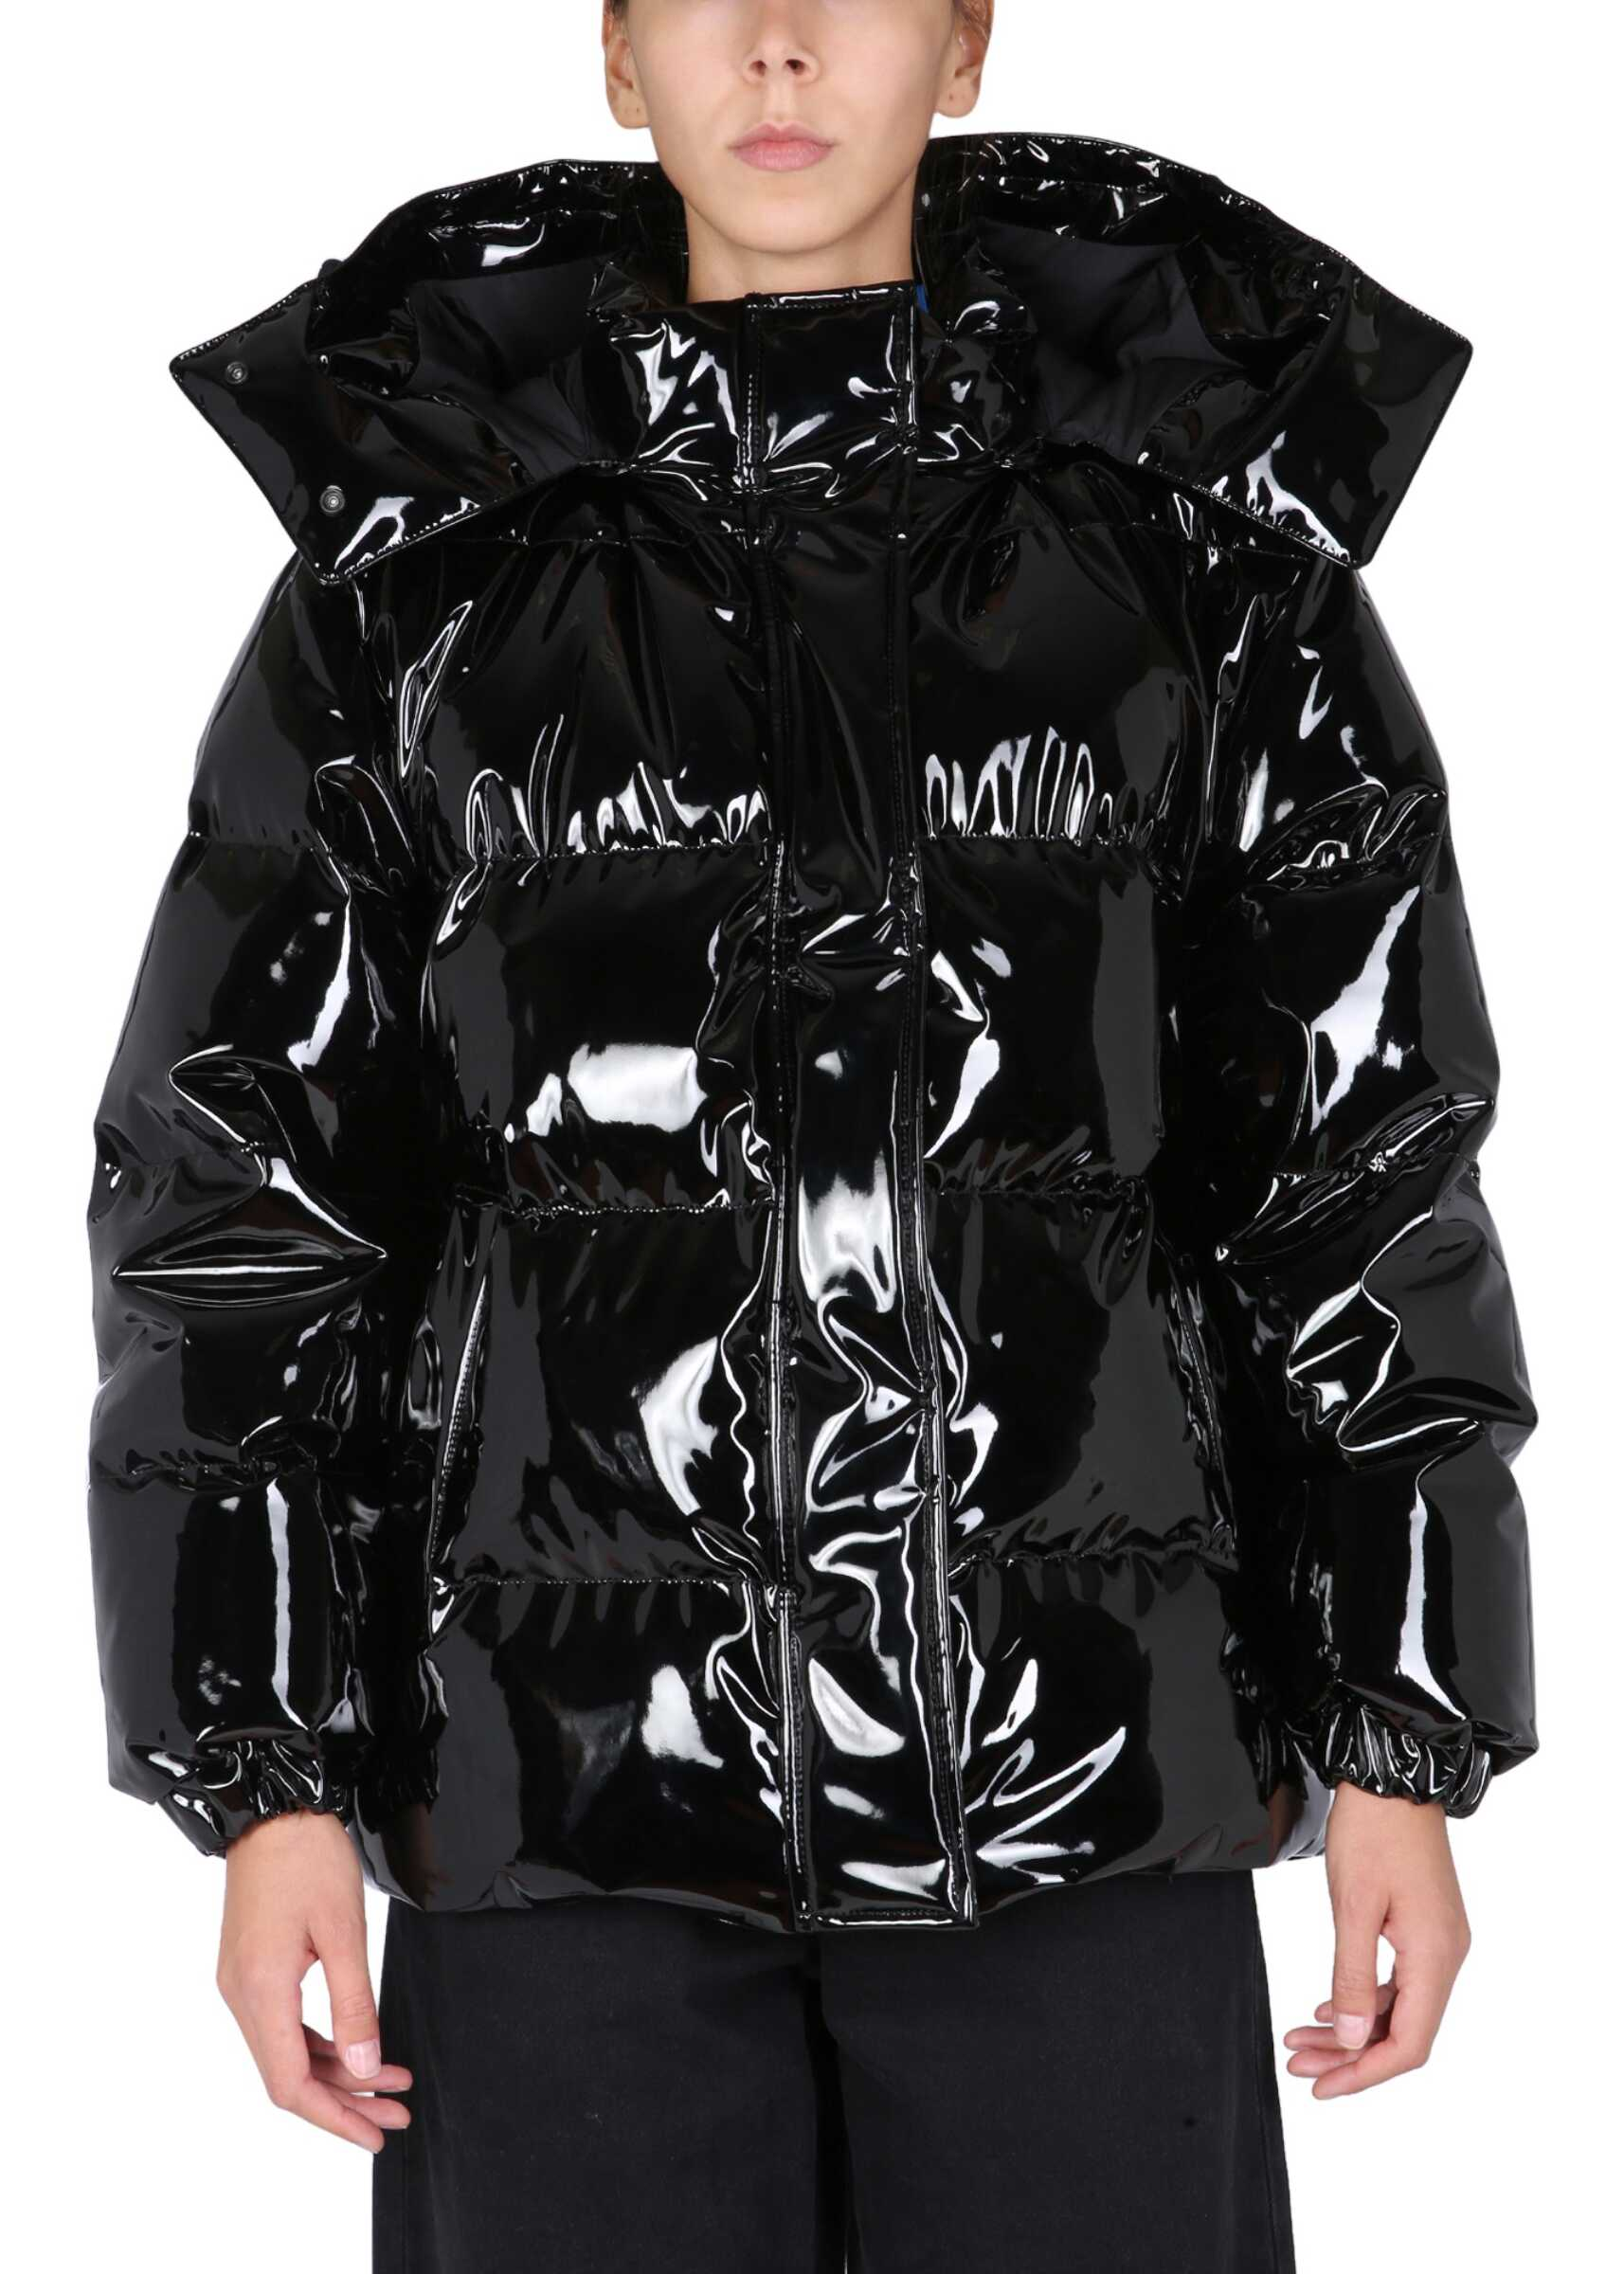 MSGM Water Repellent Down Jacket 3142MDH109_21780399 BLACK image0